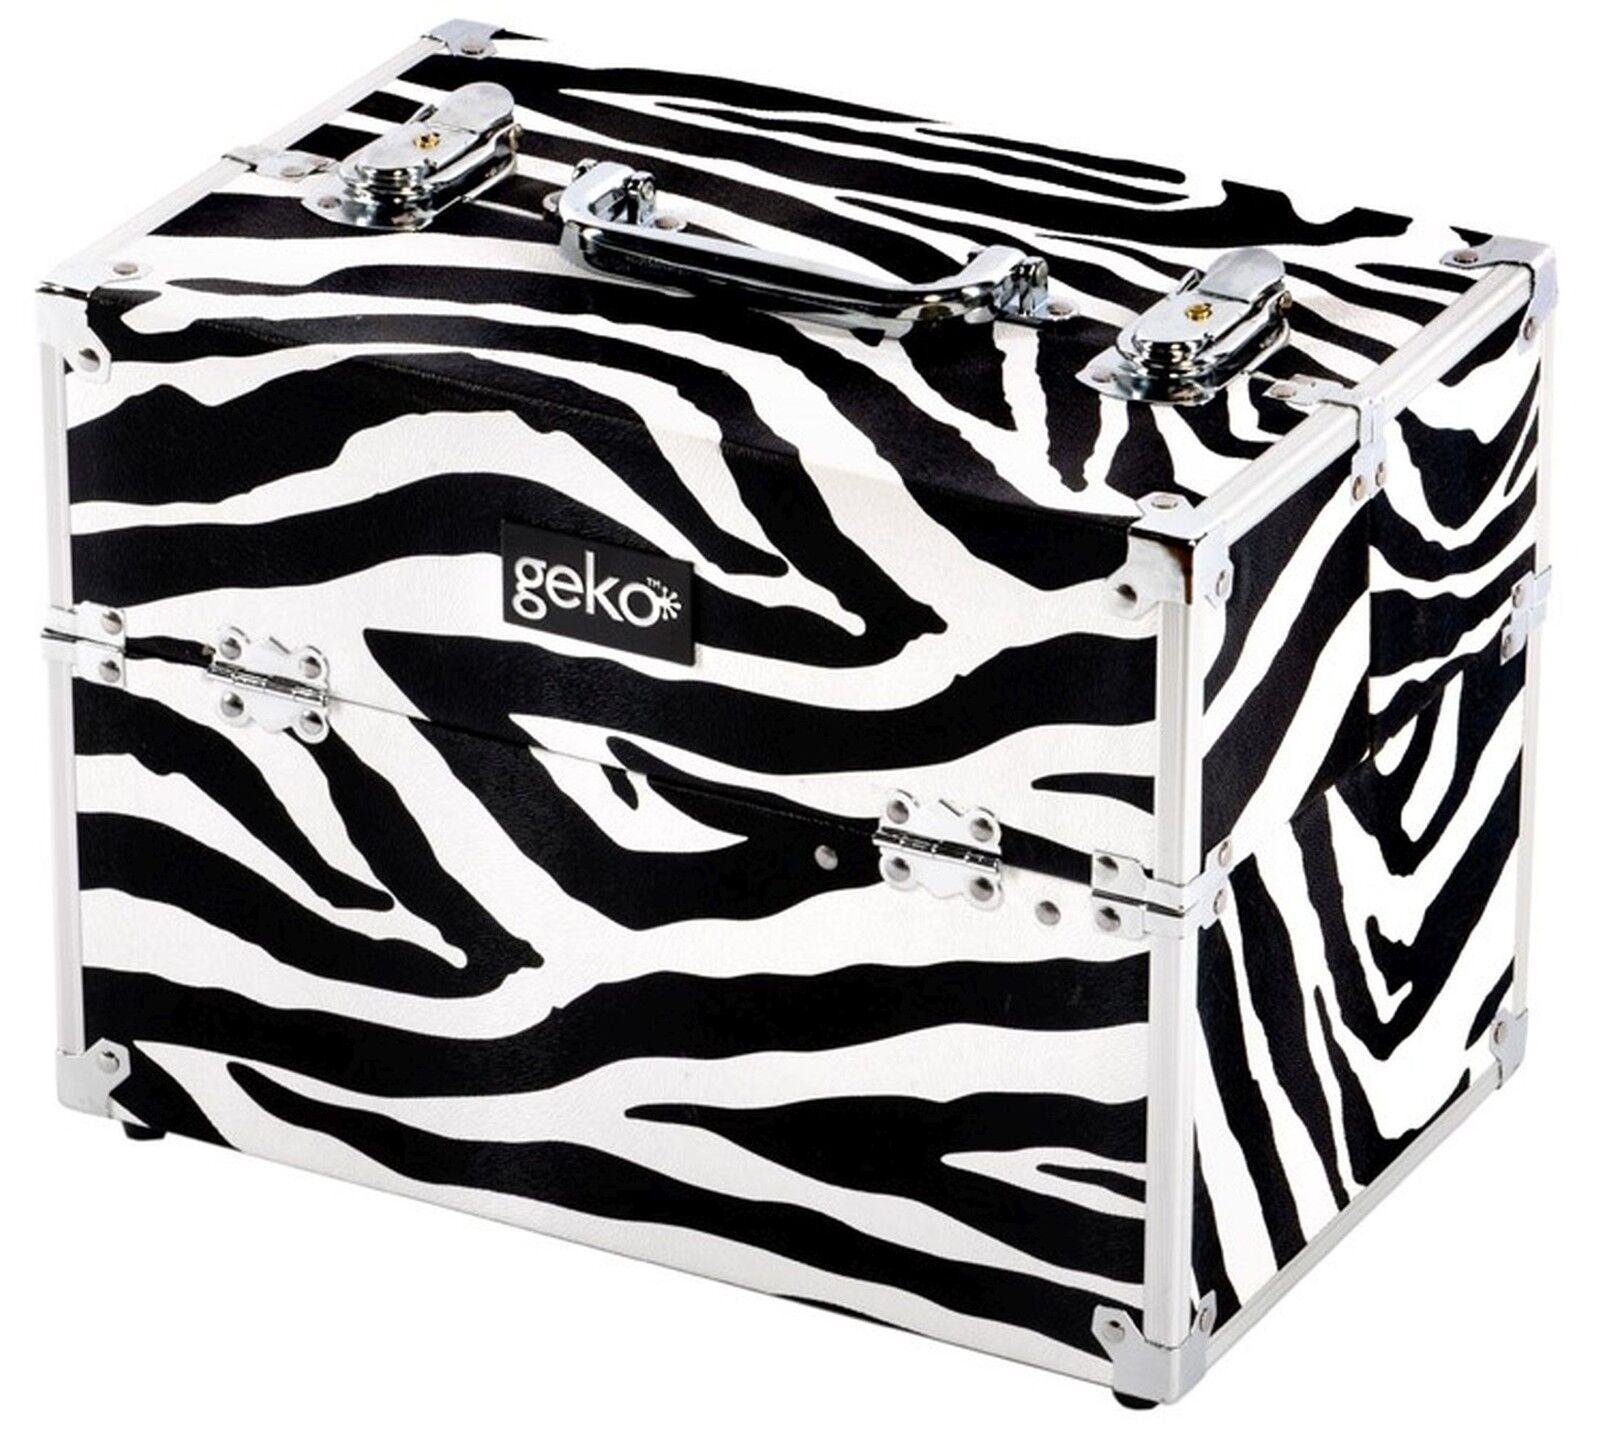 Details about Professional Personal Beauty Hairdresser Vanity Case Makeup Box Storage Zebra